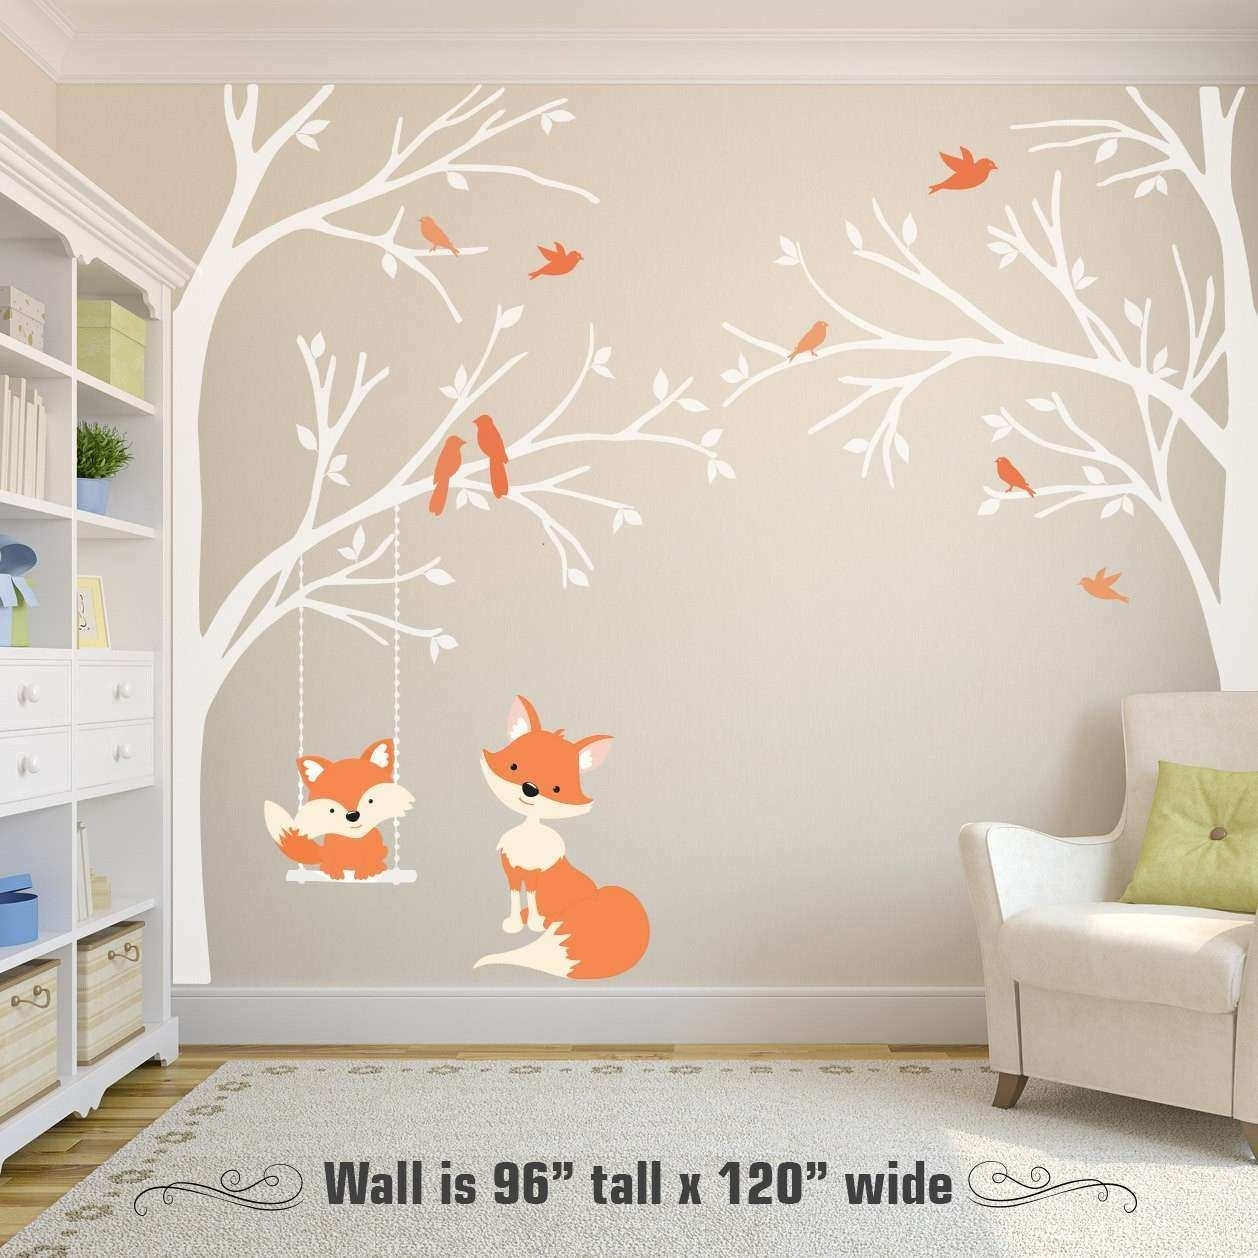 Corner Wall Art Awesome 2 Corner Trees Wall Decal Nursery Decor Fox throughout Corner Wall Art (Image 9 of 20)